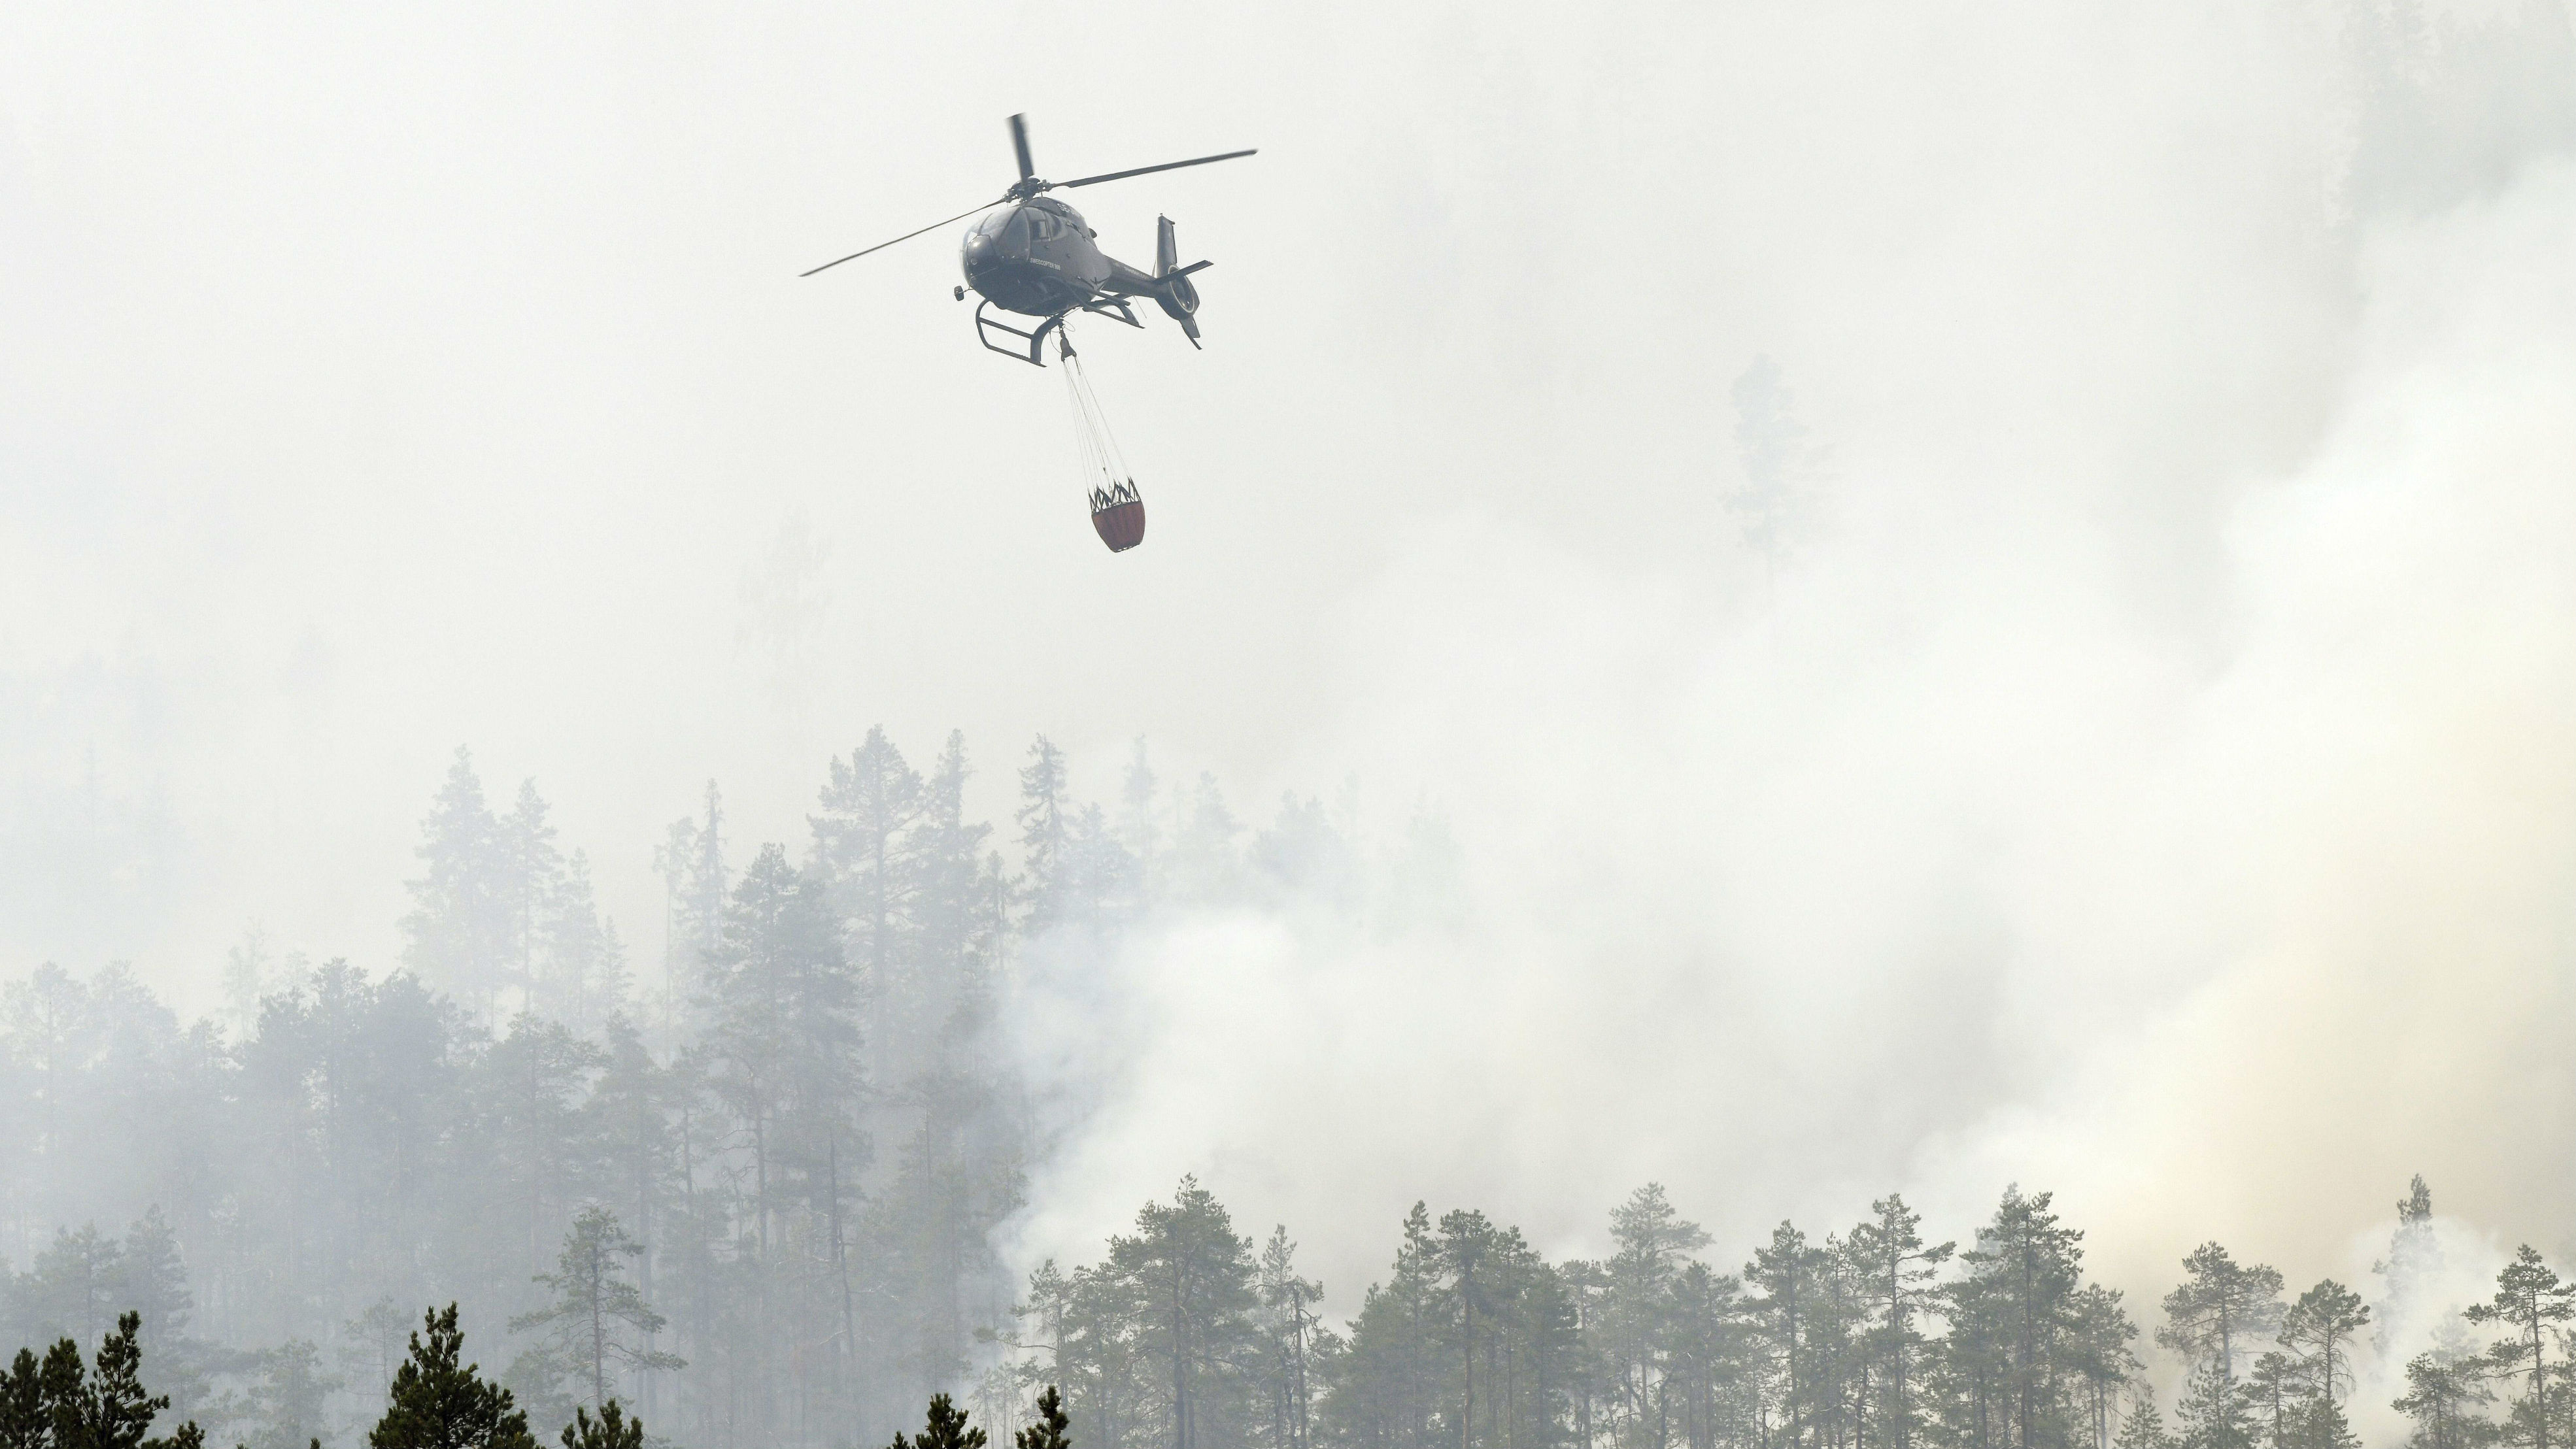 Is Sweden better prepared after last year's historic wildfire season?